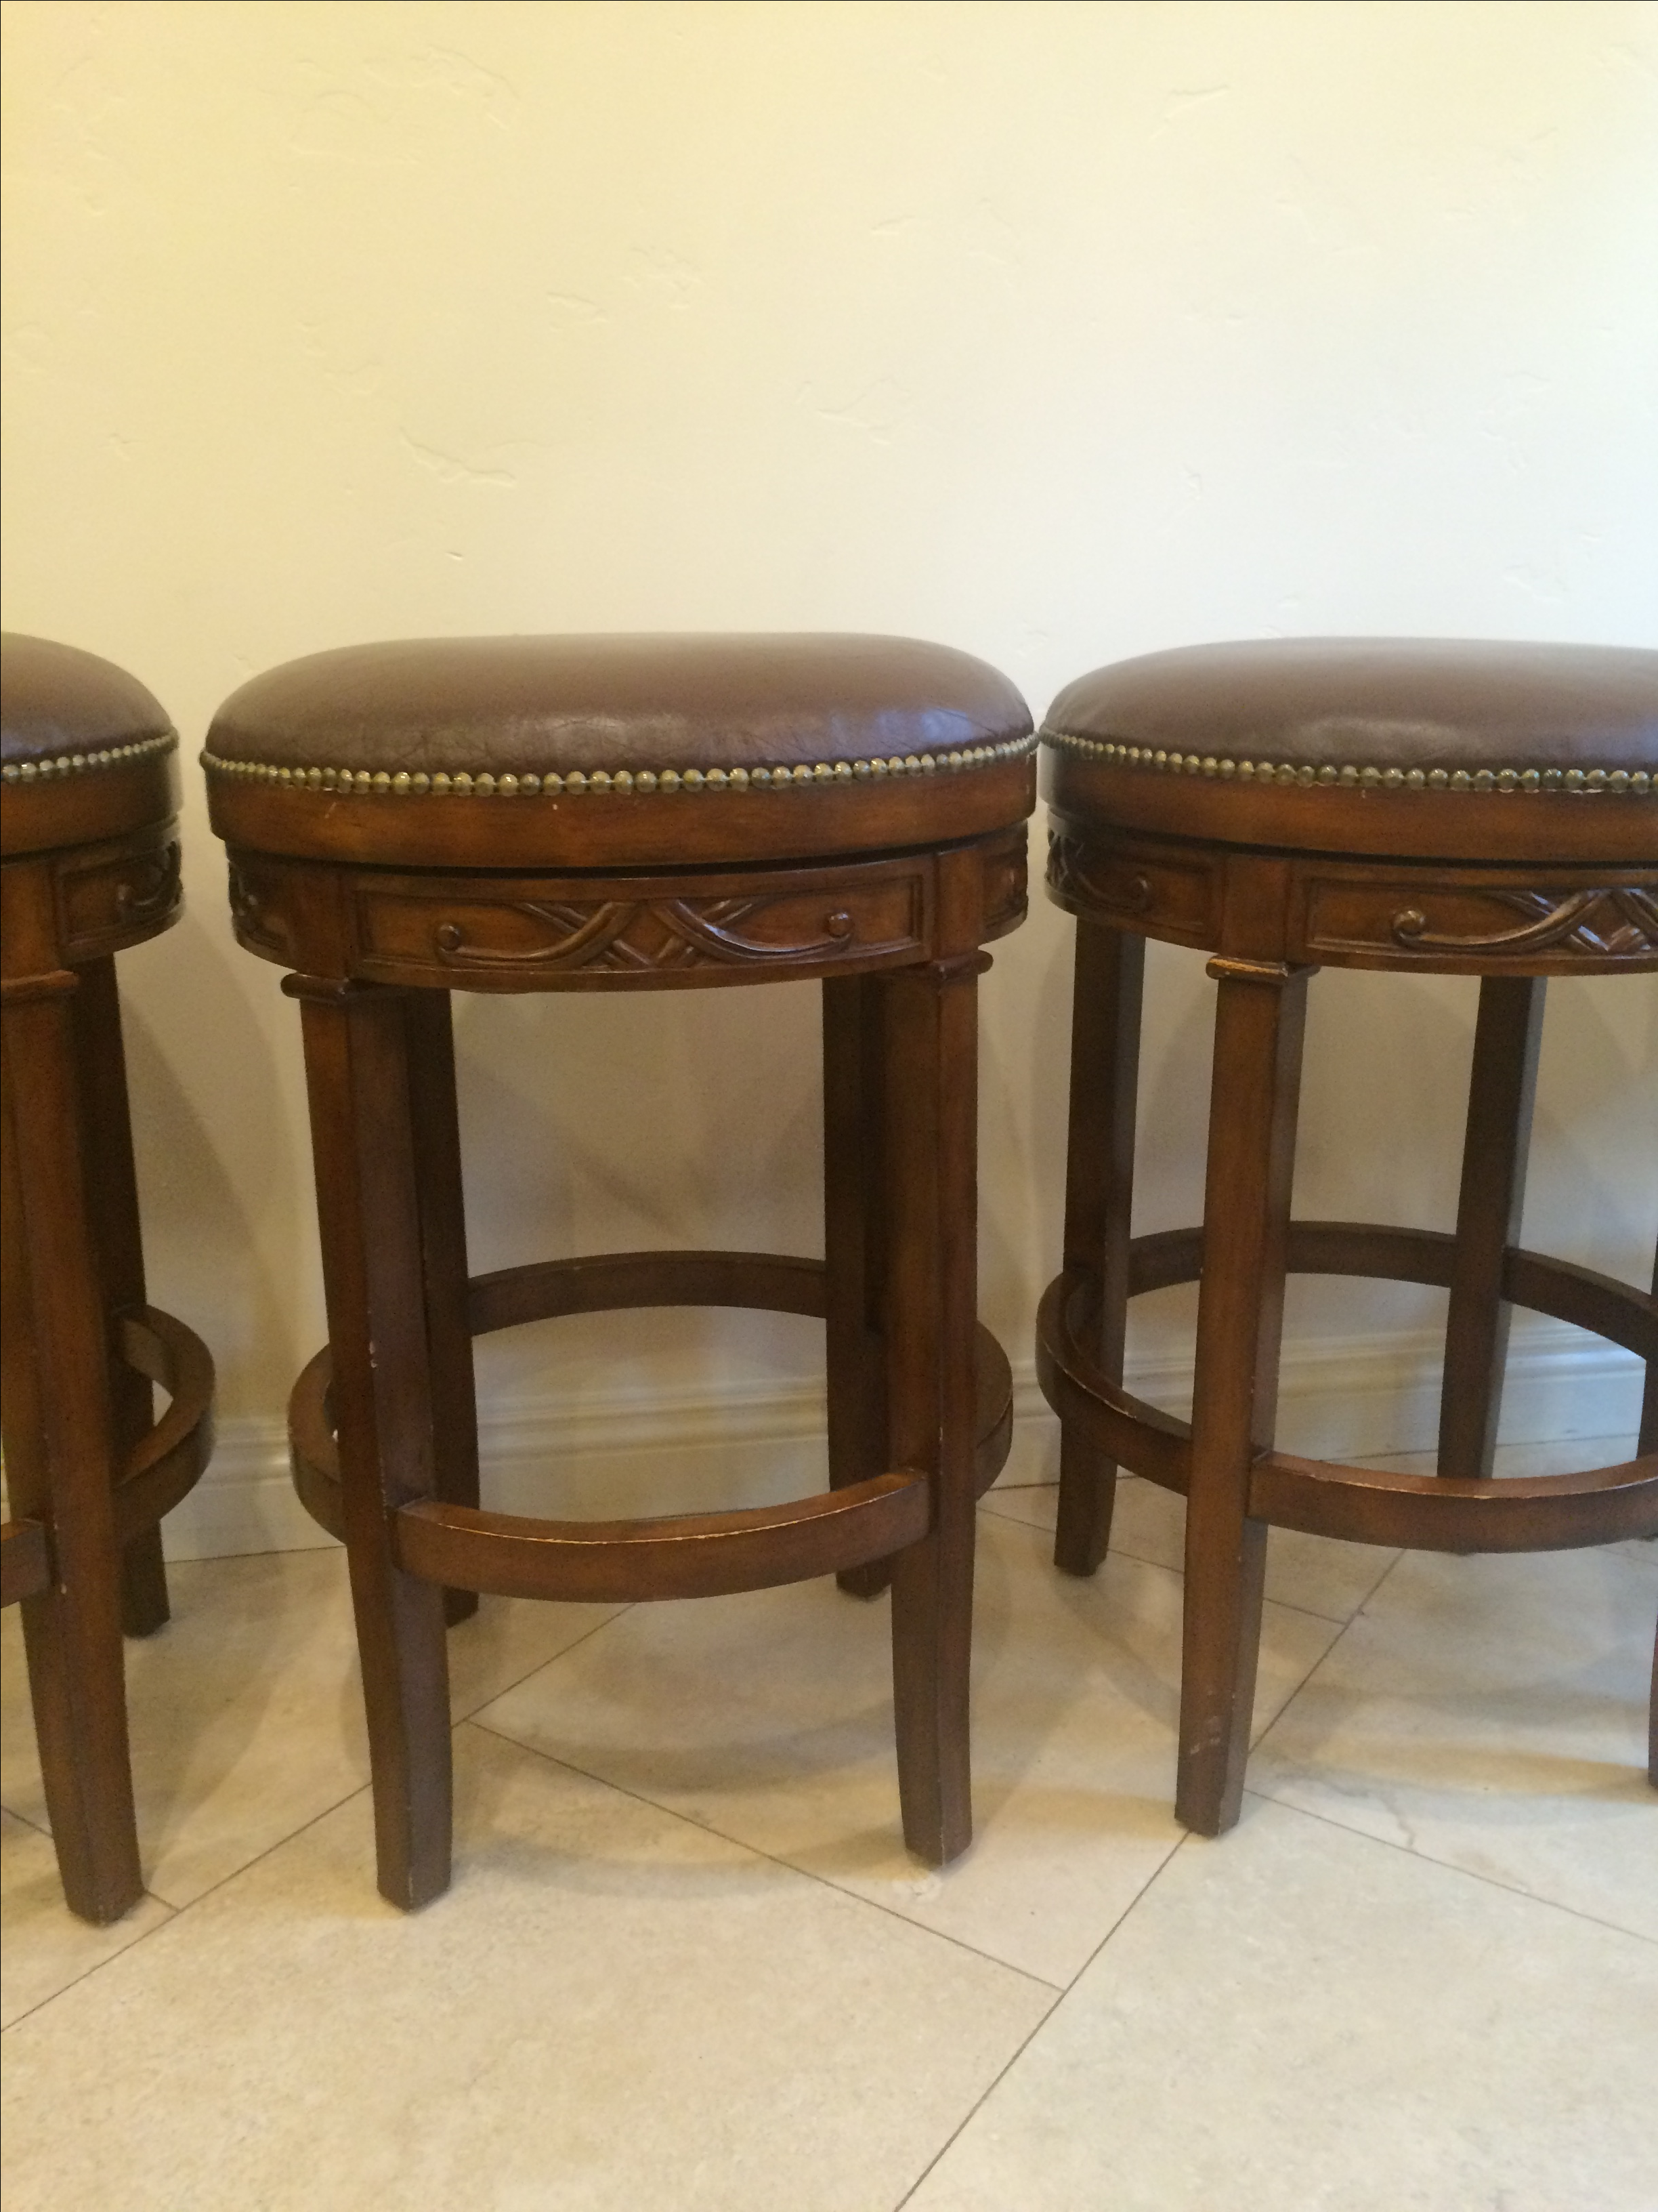 Swivel Leather Amp Wood Bar Stools Set Of 4 Chairish